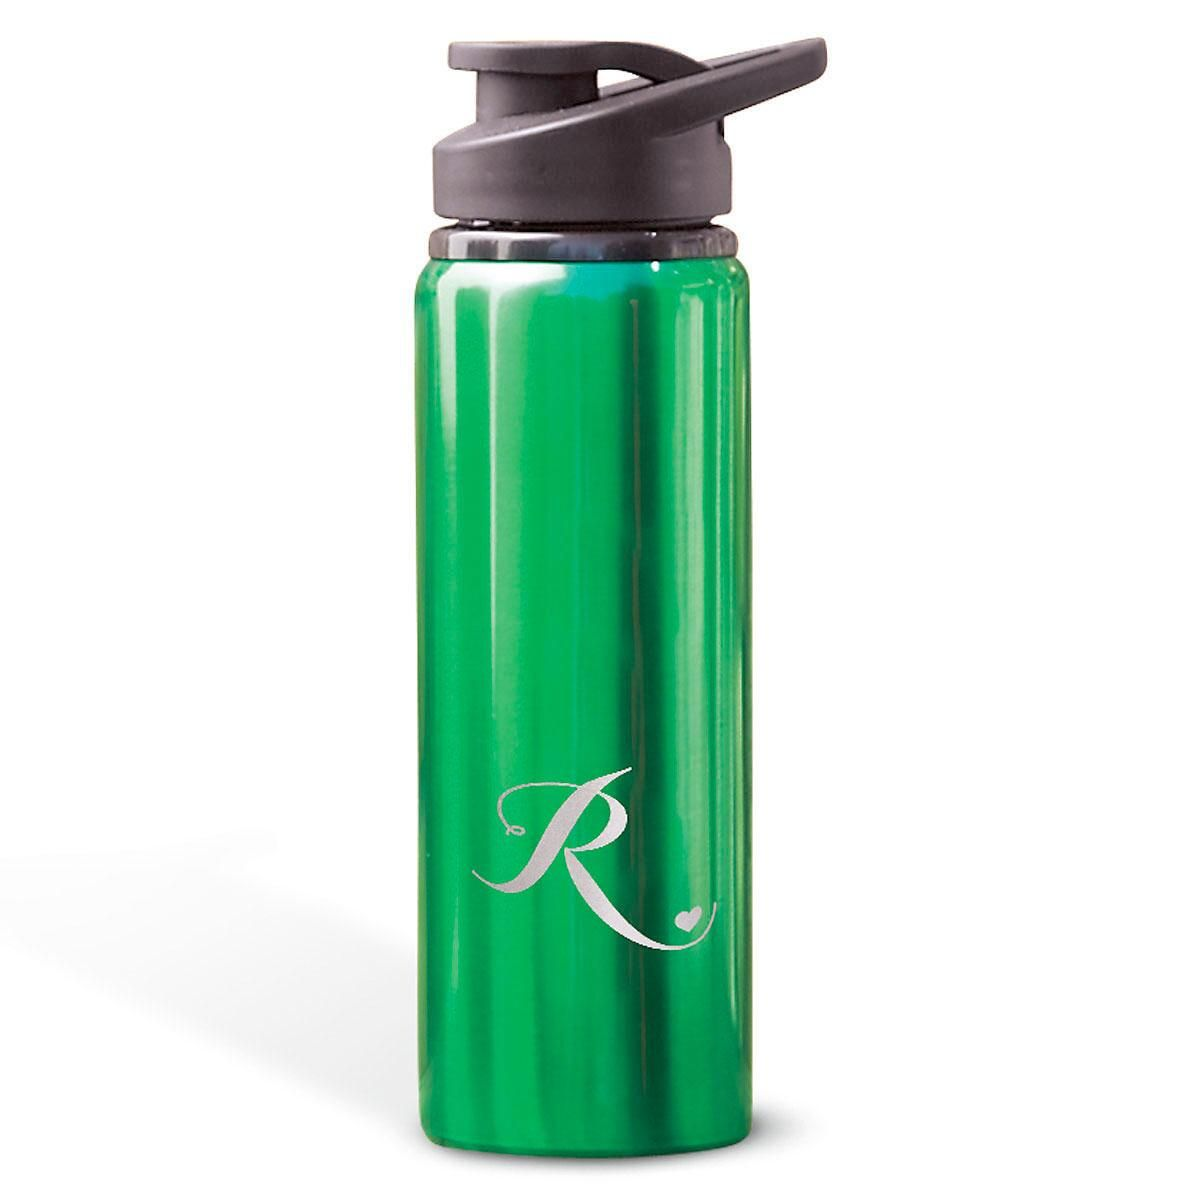 Personalized Aluminum Water Bottles with Heart